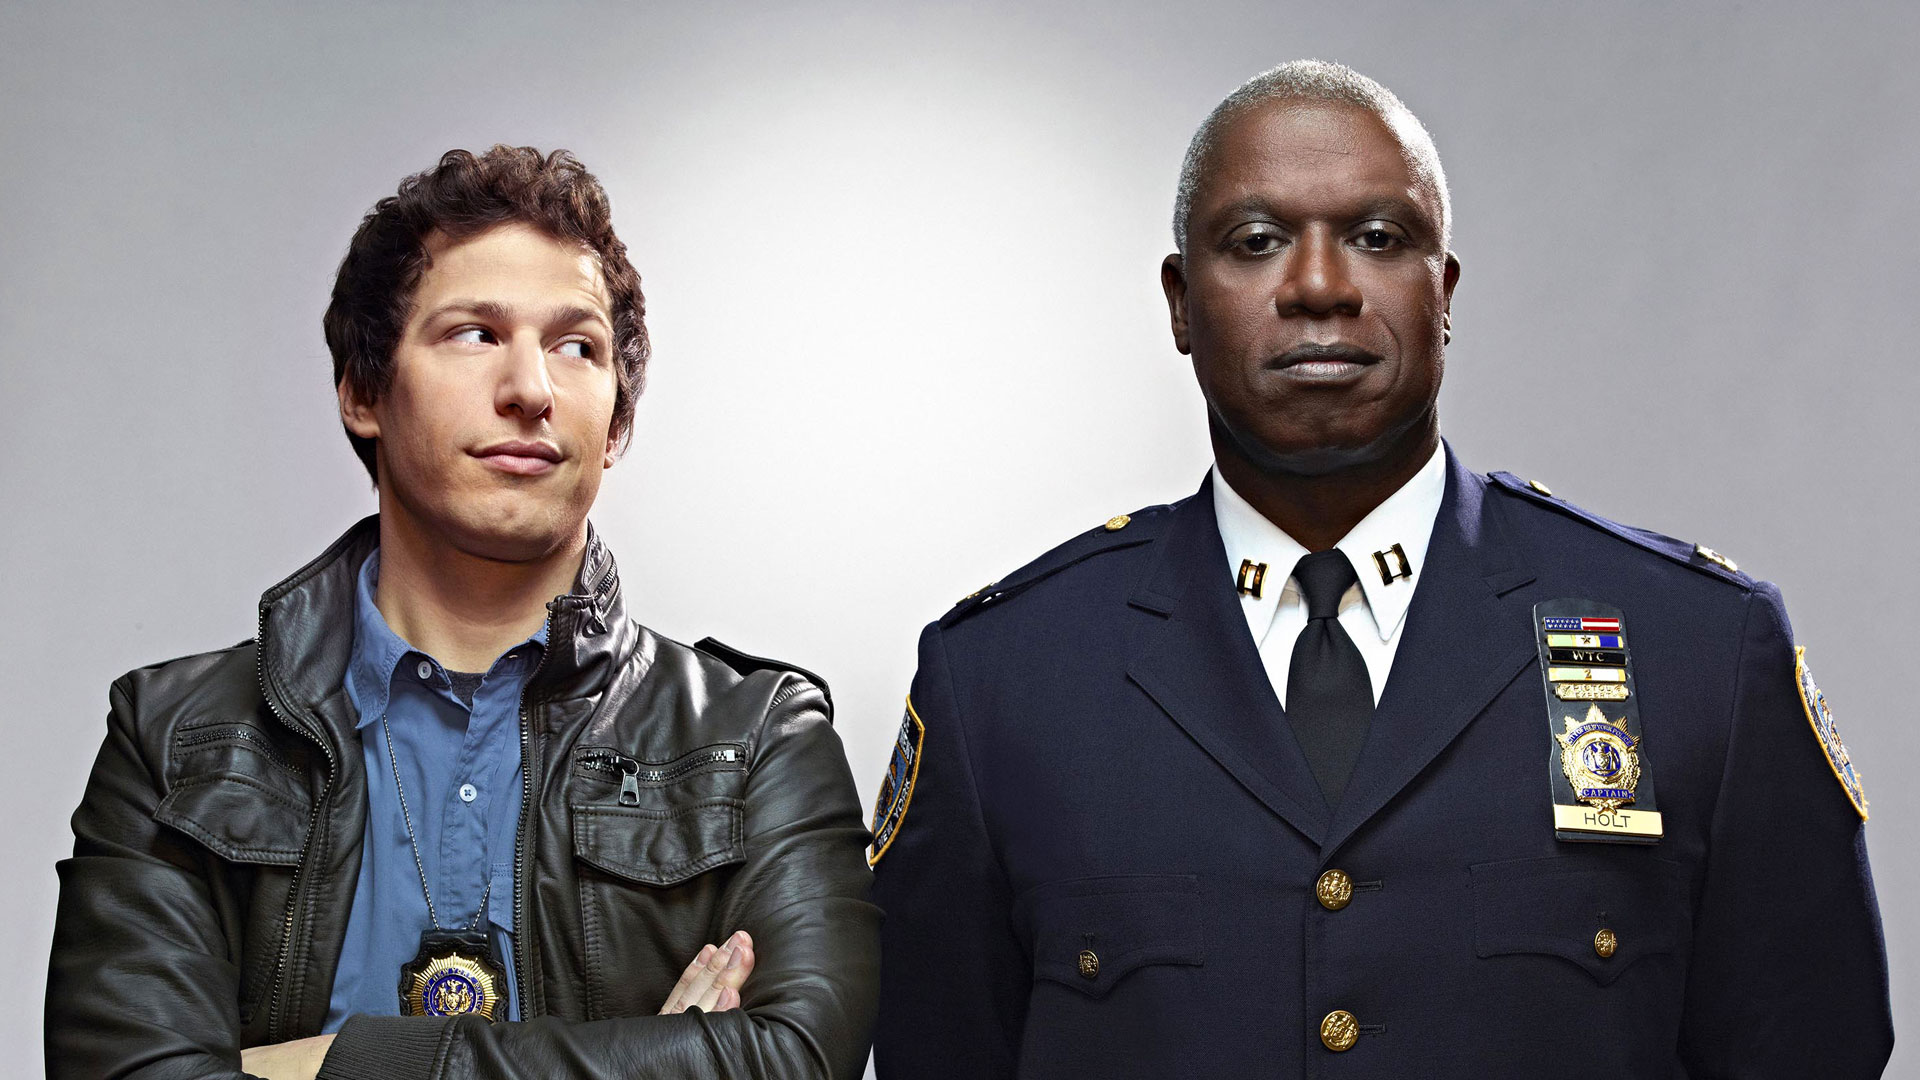 Brooklyn Nine-Nine - All 4